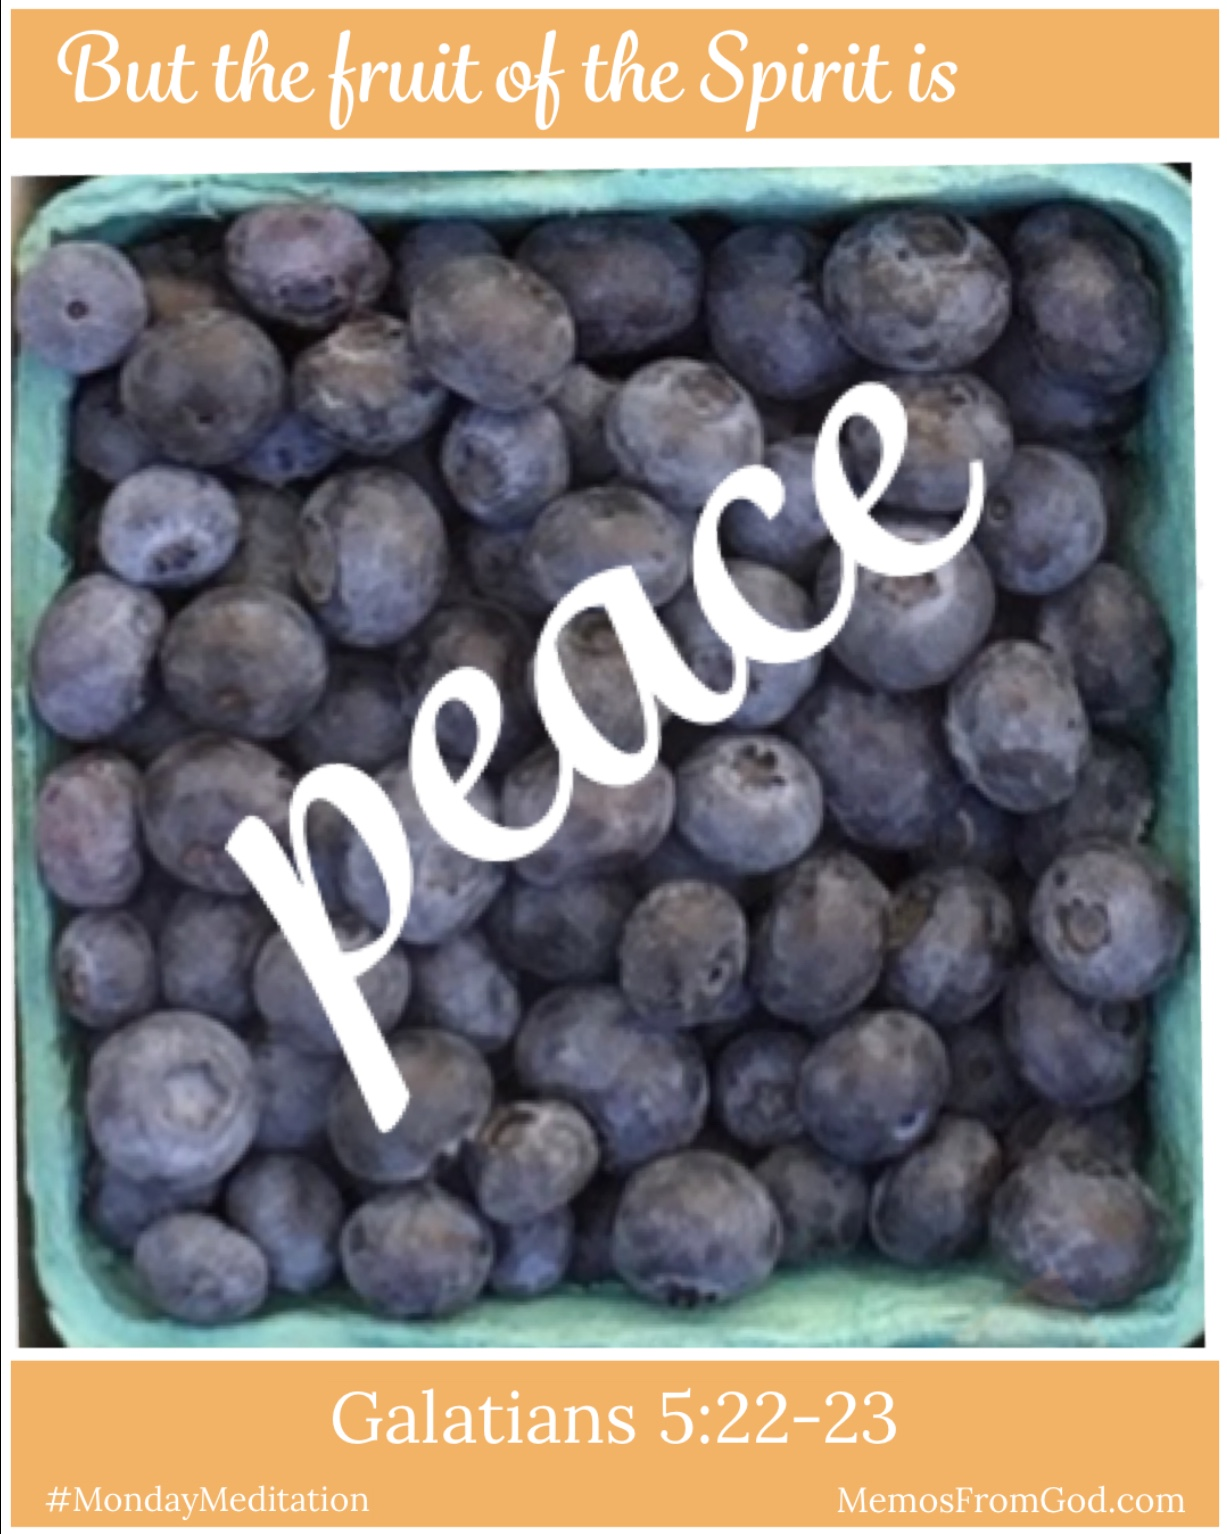 The top view of a pint box of blueberries. Caption: But the fruit of the Spirit is peace. Galatians 5:22-23